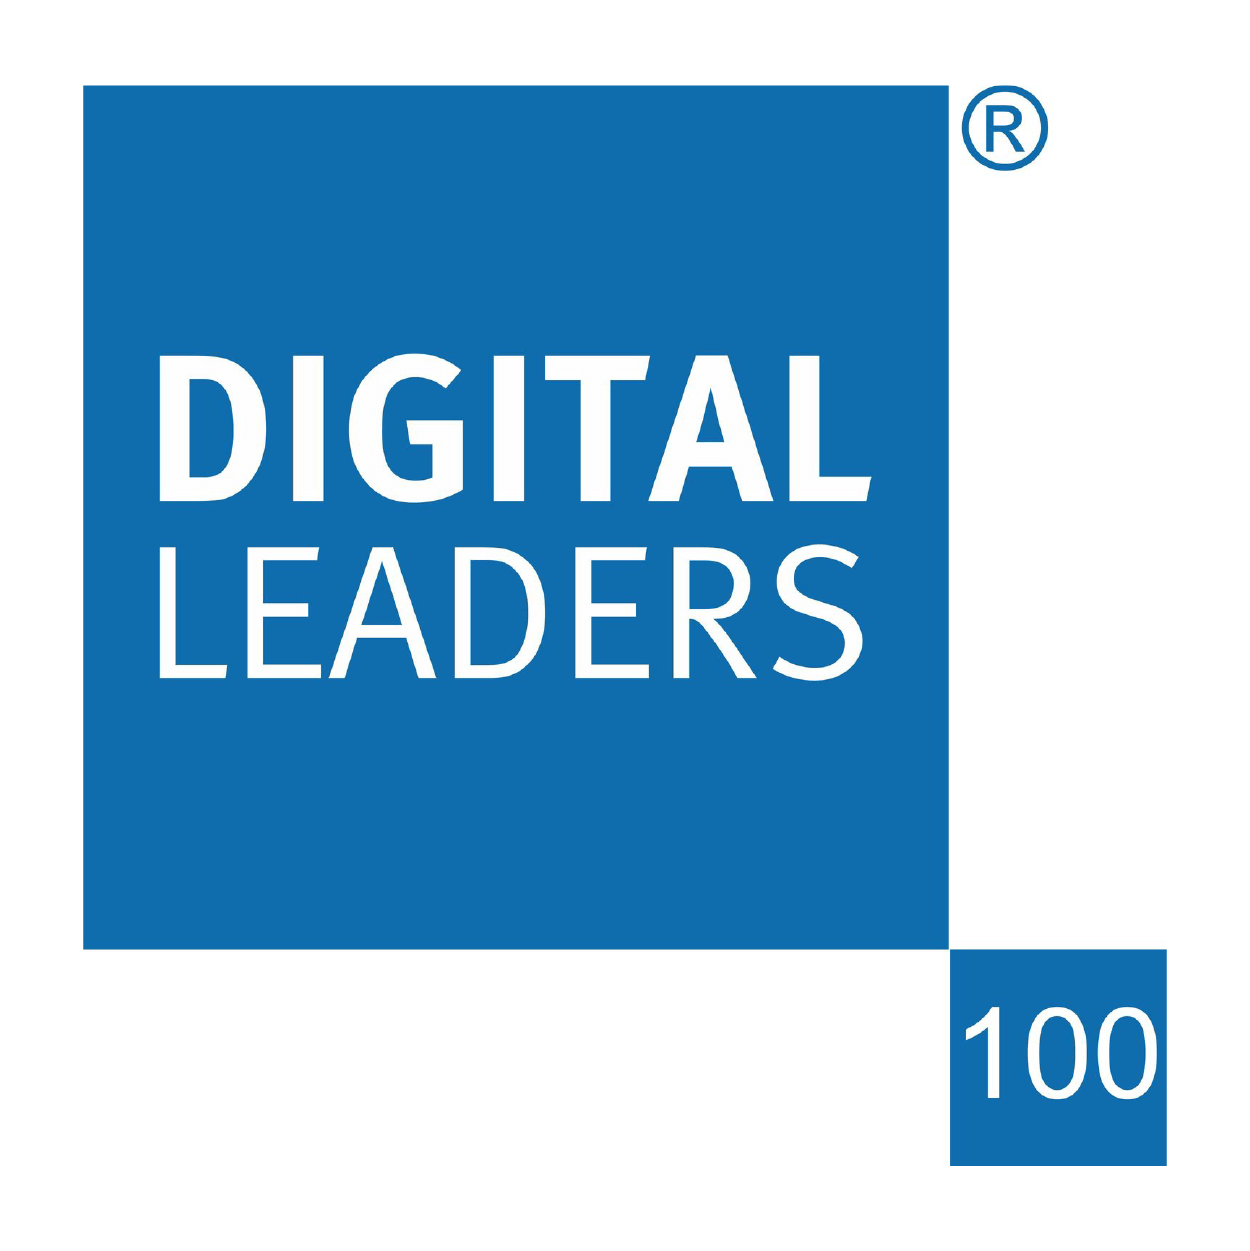 Digital Leaders 100 logo